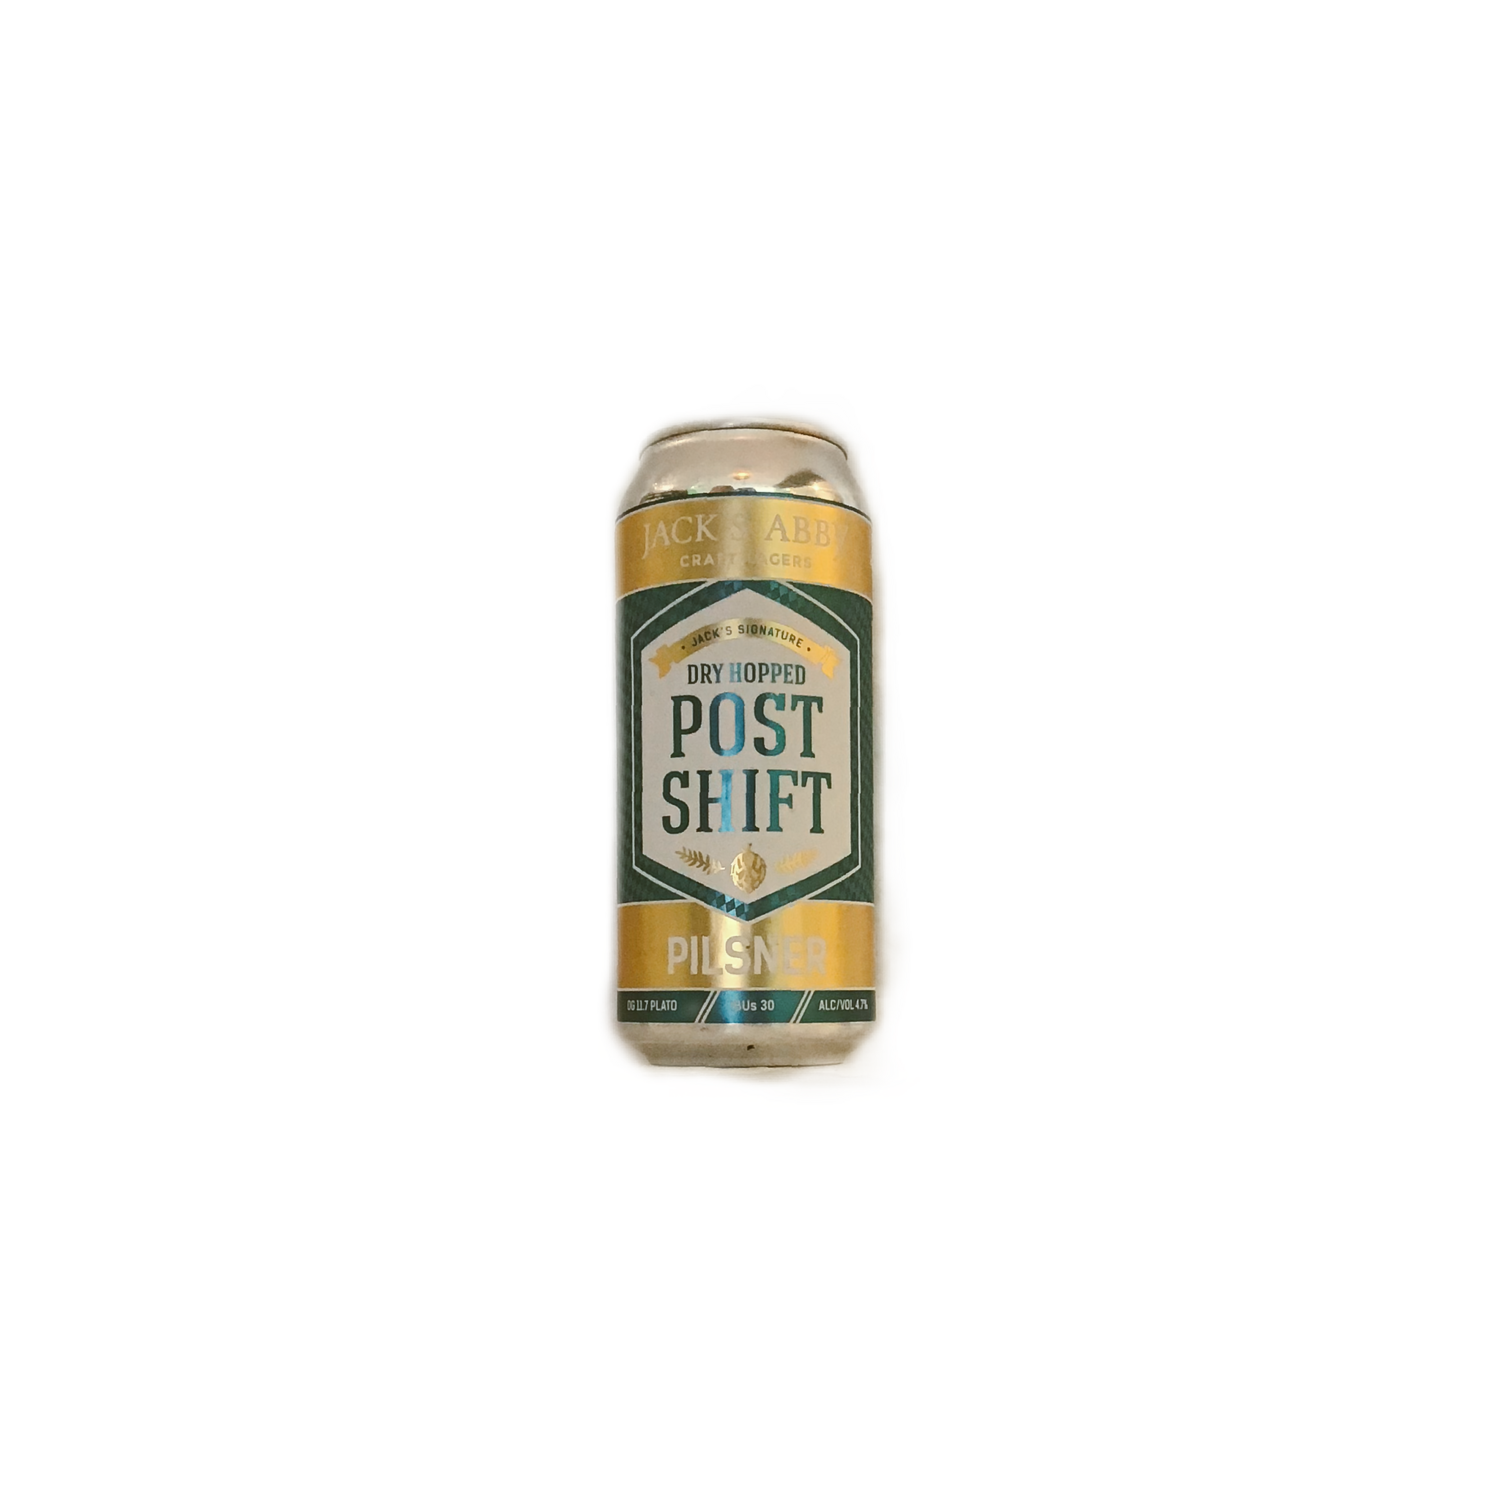 Jacks Abby DRY HOPPED Post Shift Pilsner